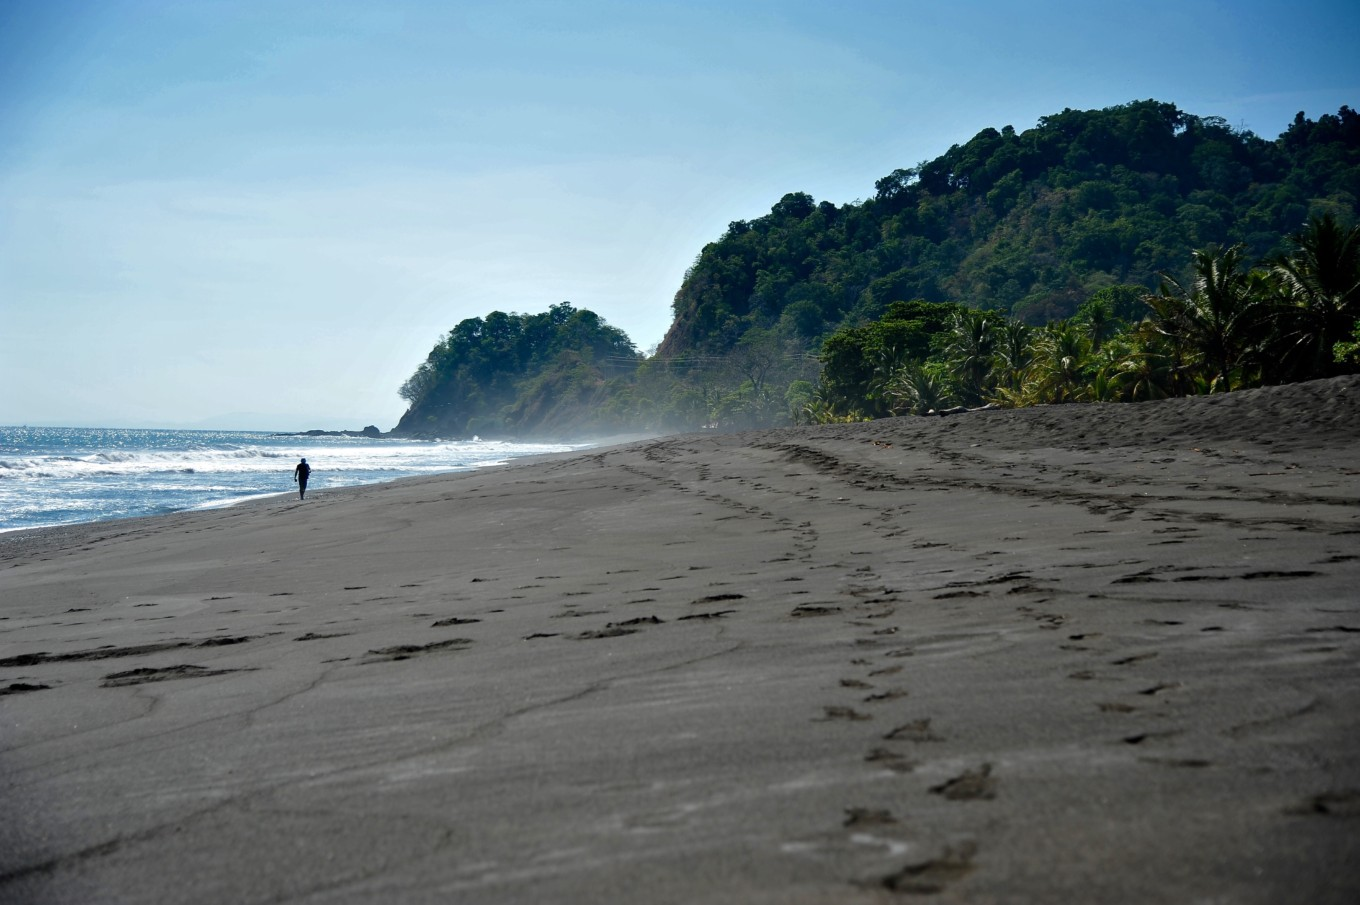 Playa hermosa, Jaco, Costa Rica